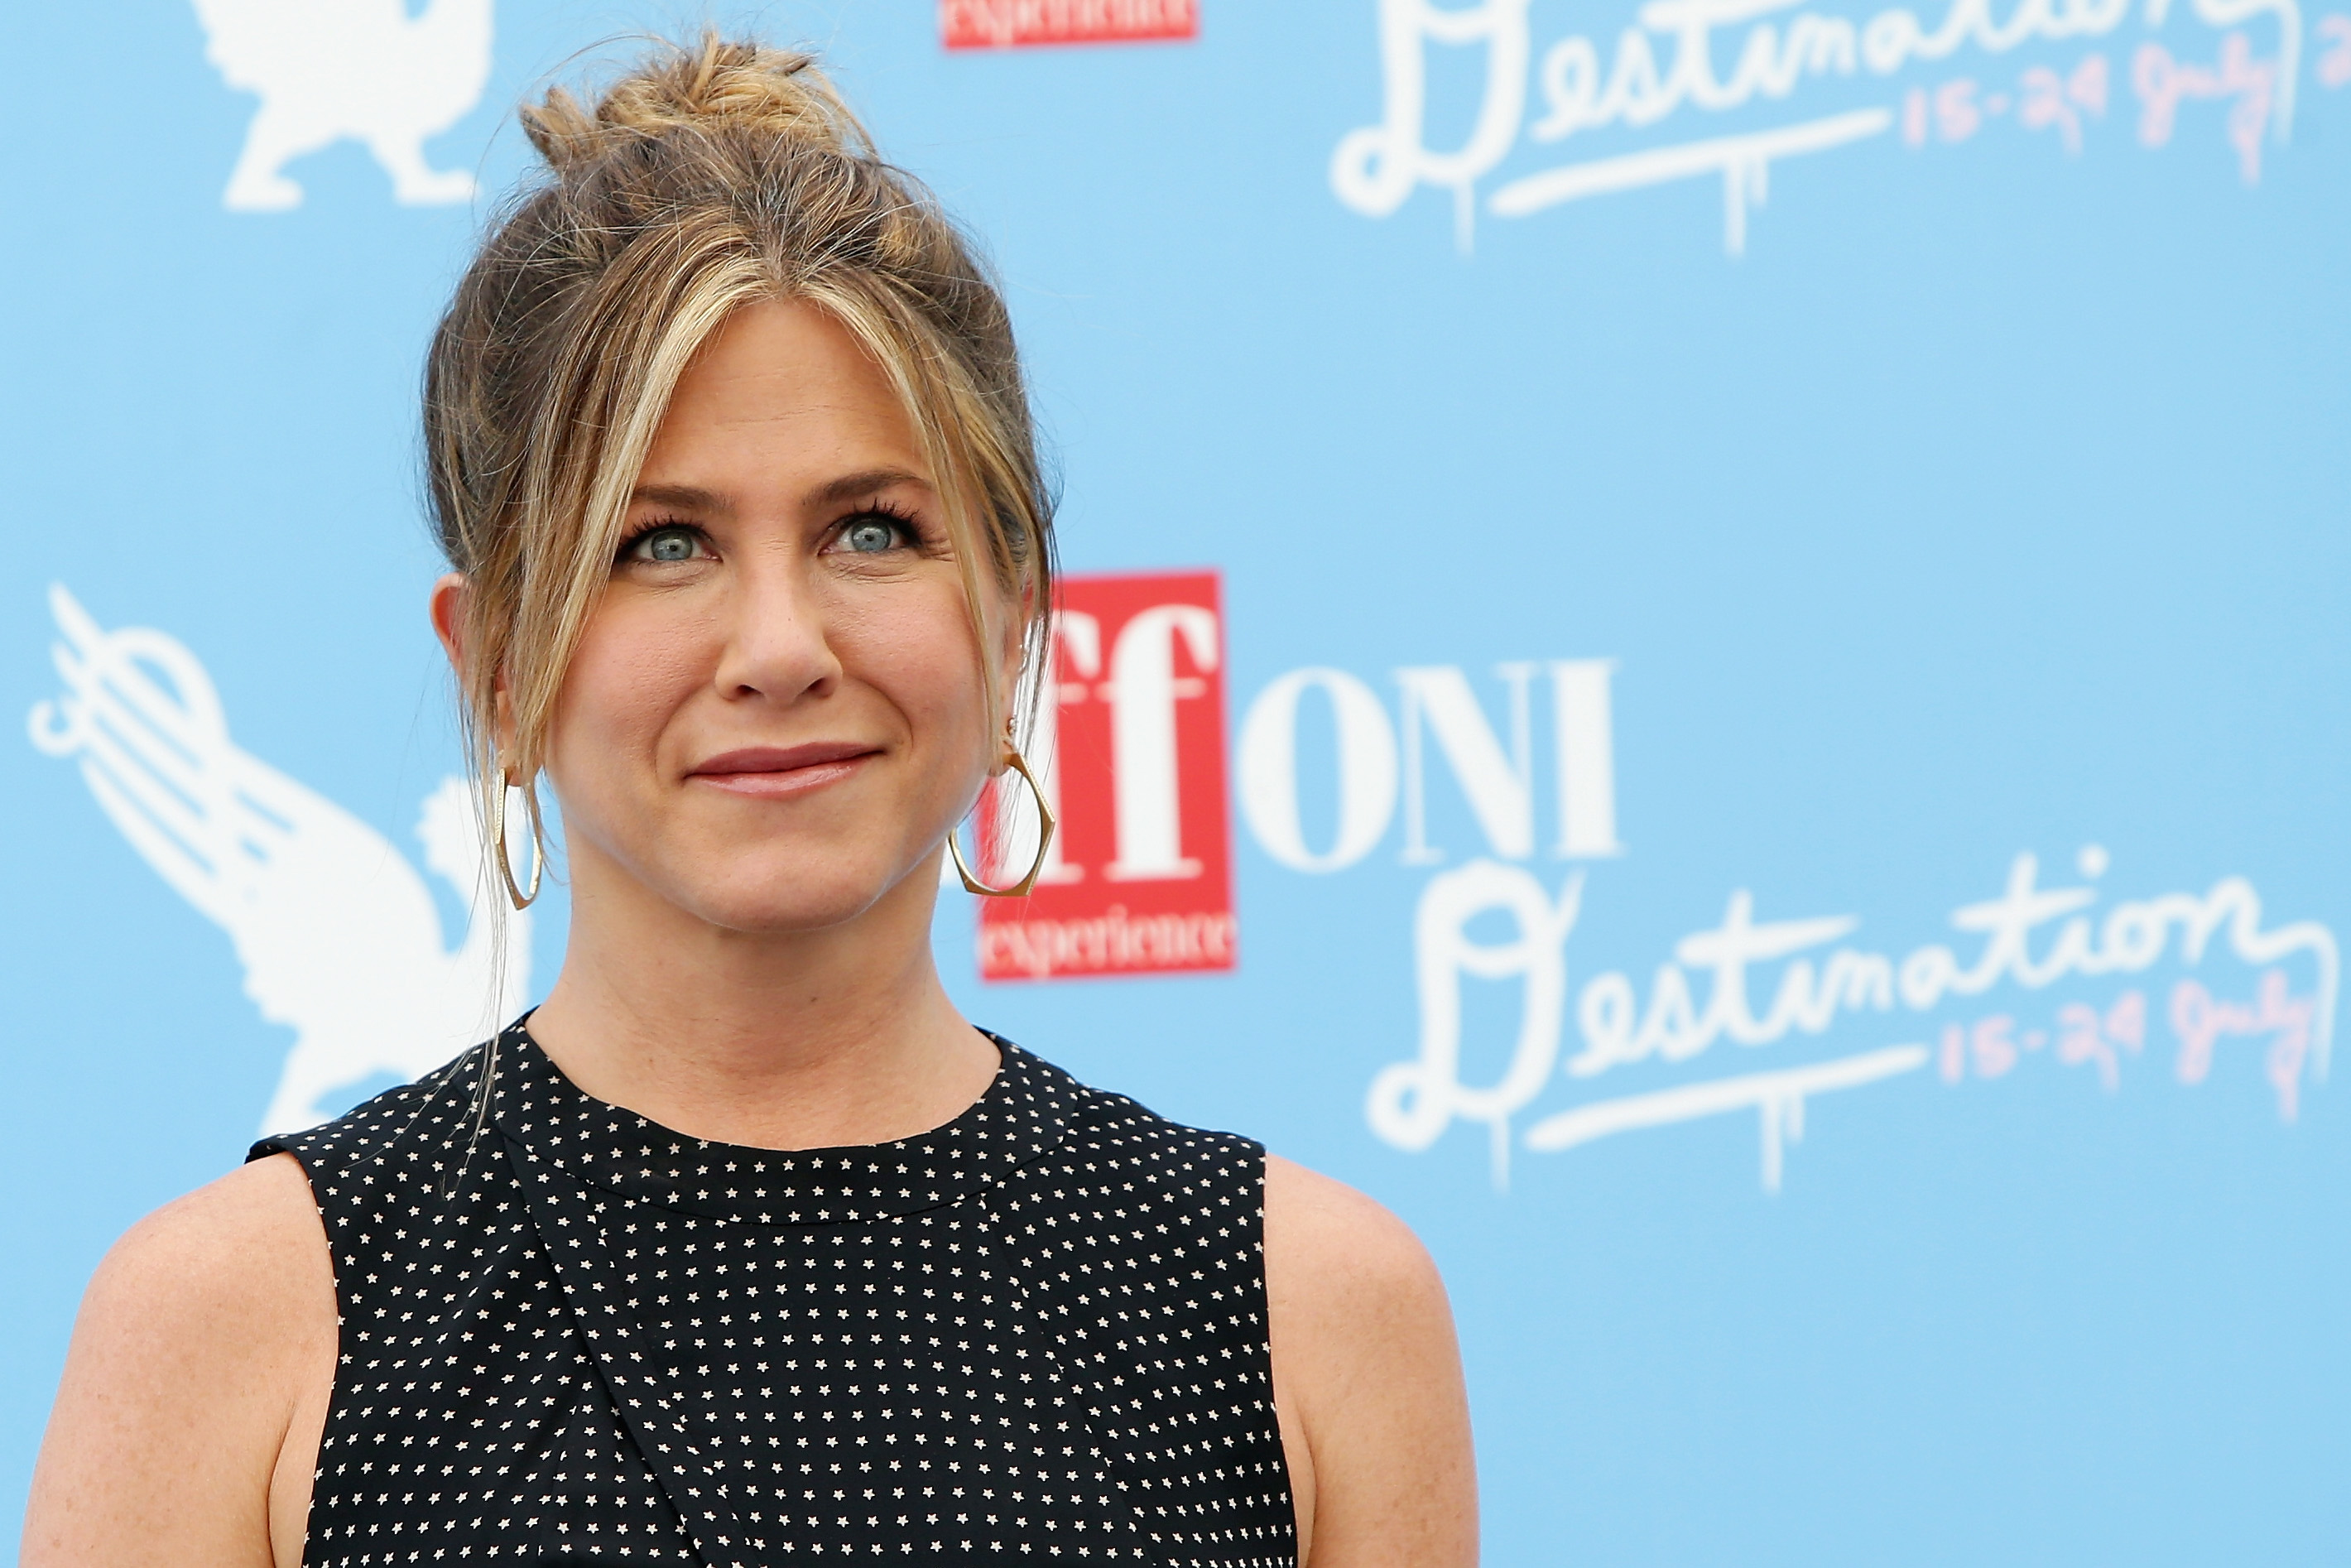 Jennifer Aniston: 'I'm not heartbroken after Justin Theroux split'